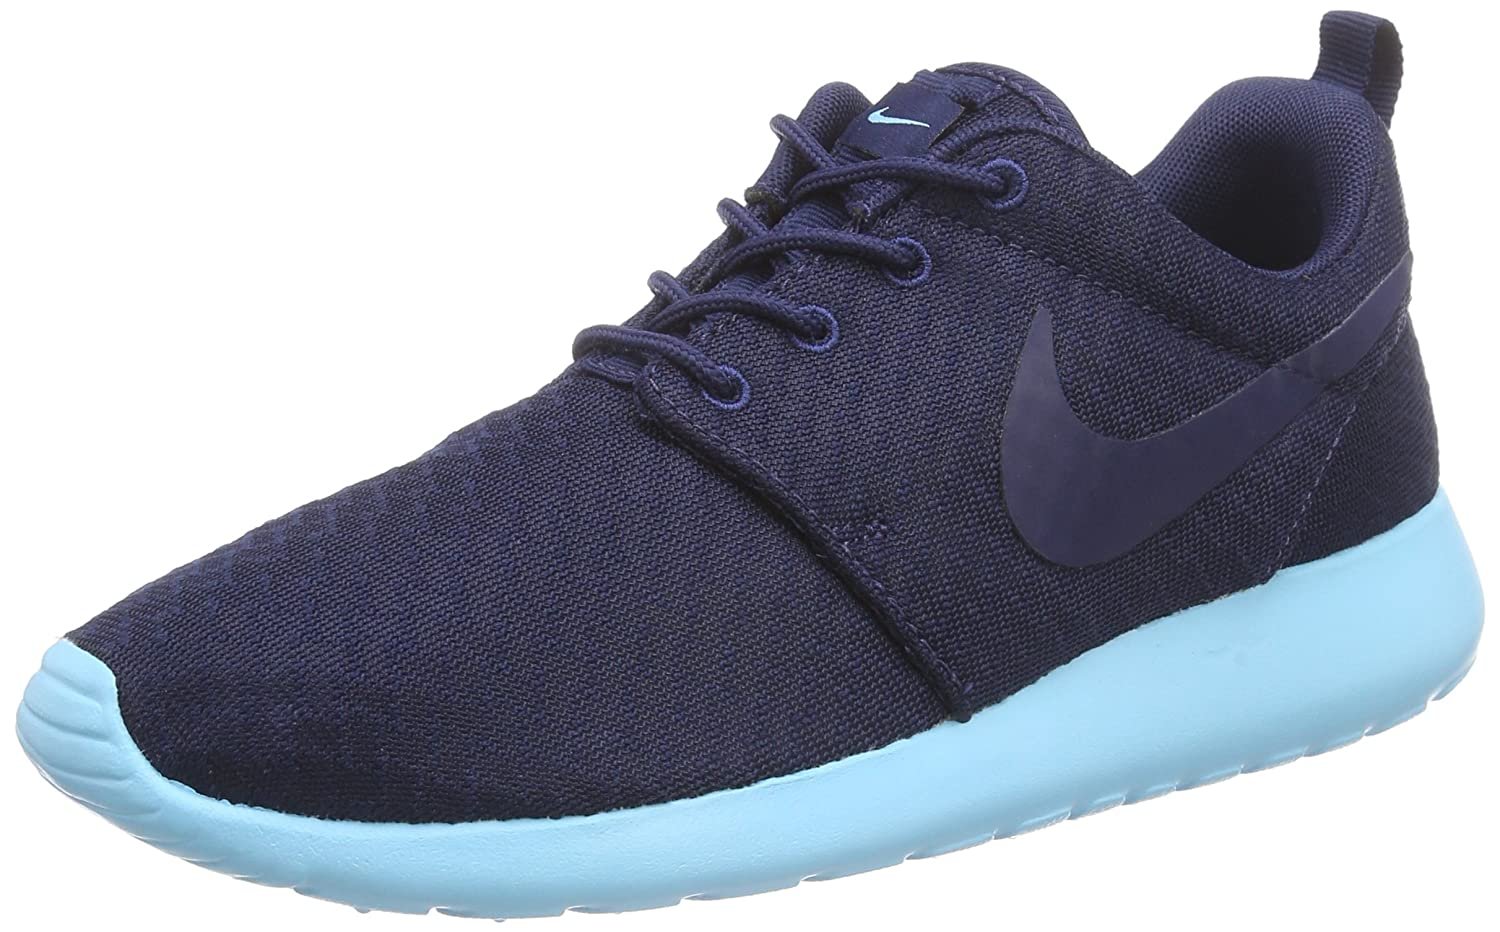 NIKE Women's Roshe One Running Shoe B00R54V1QG uk 4.5 us 7 eu 38|Navy Blue